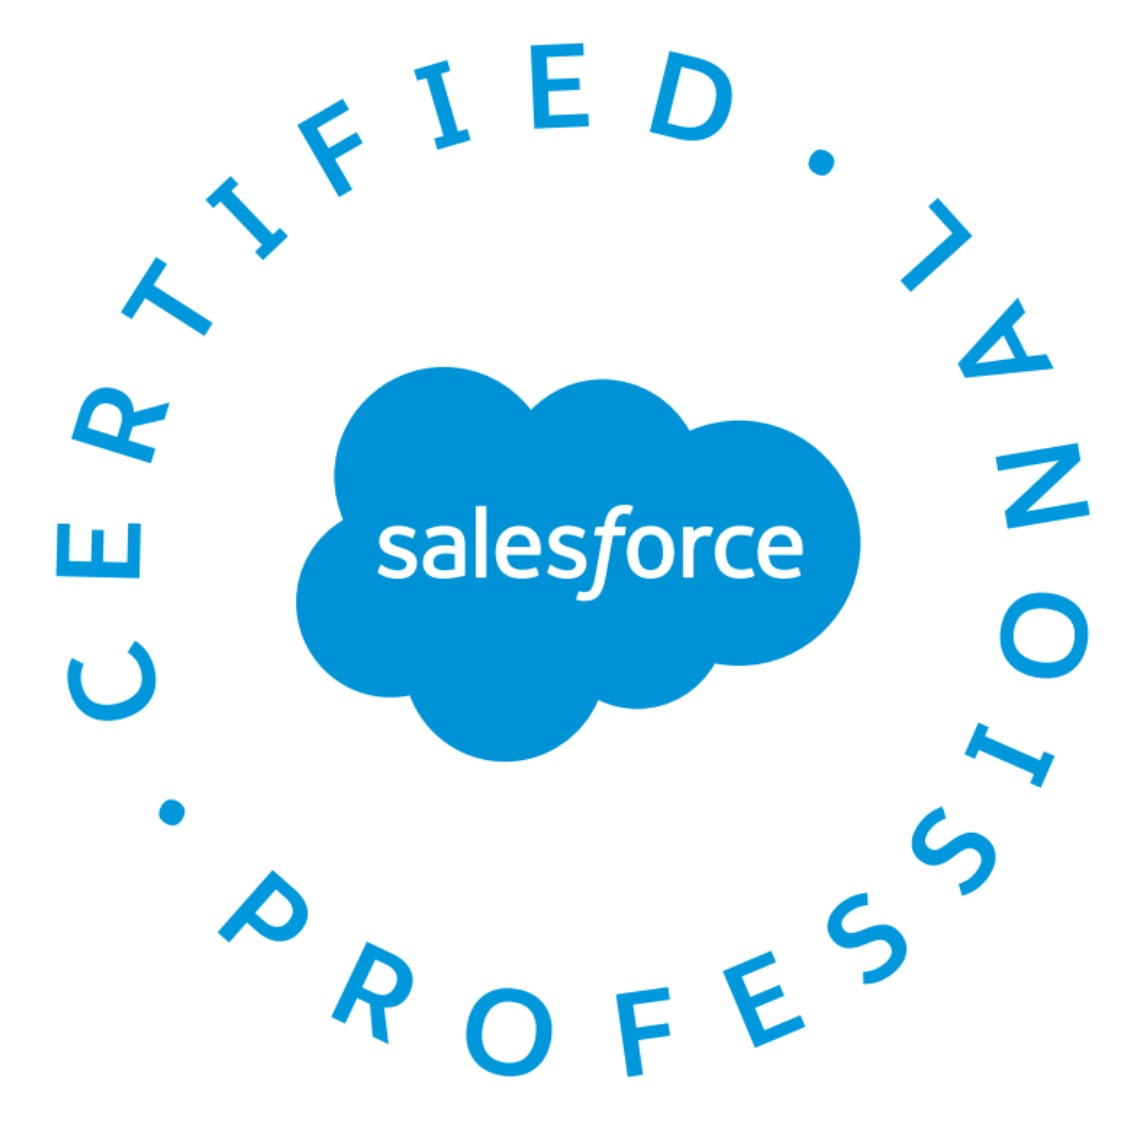 Ask A Salesforce Expert Anything! with Cloud Giants